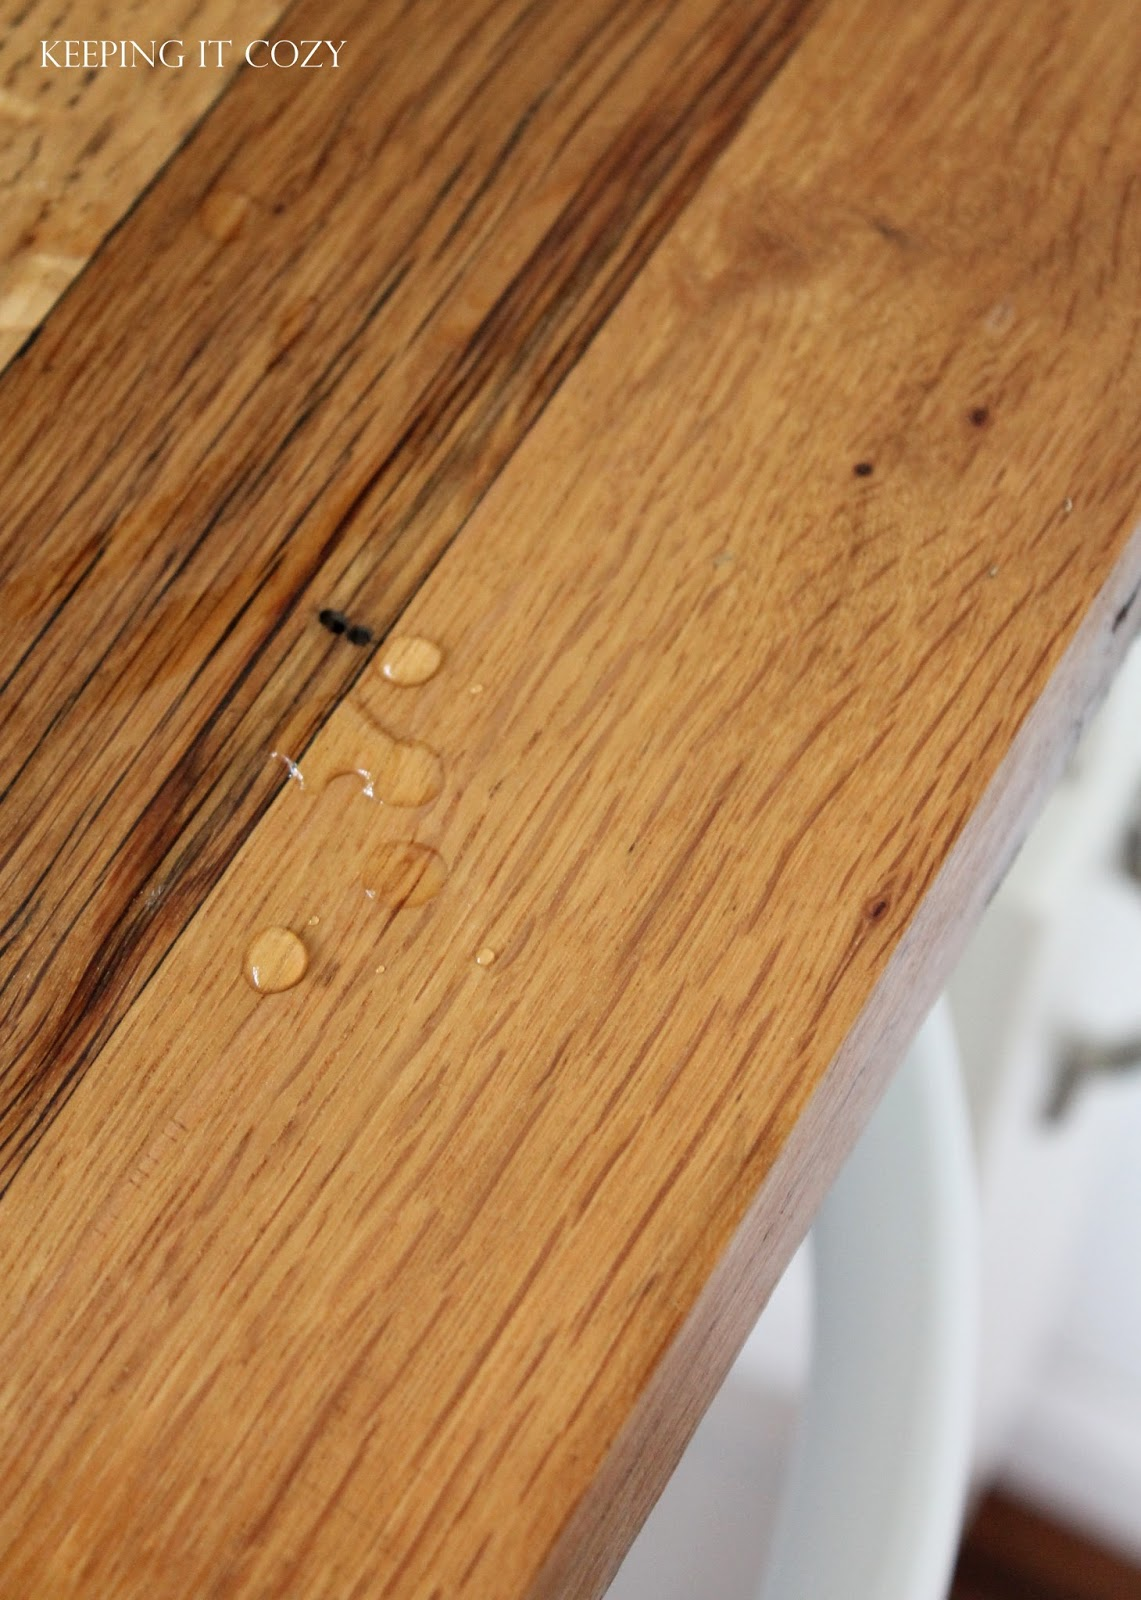 Tung Oil For Butcher Block Countertops Keeping It Cozy All About Butcher Block Countertops